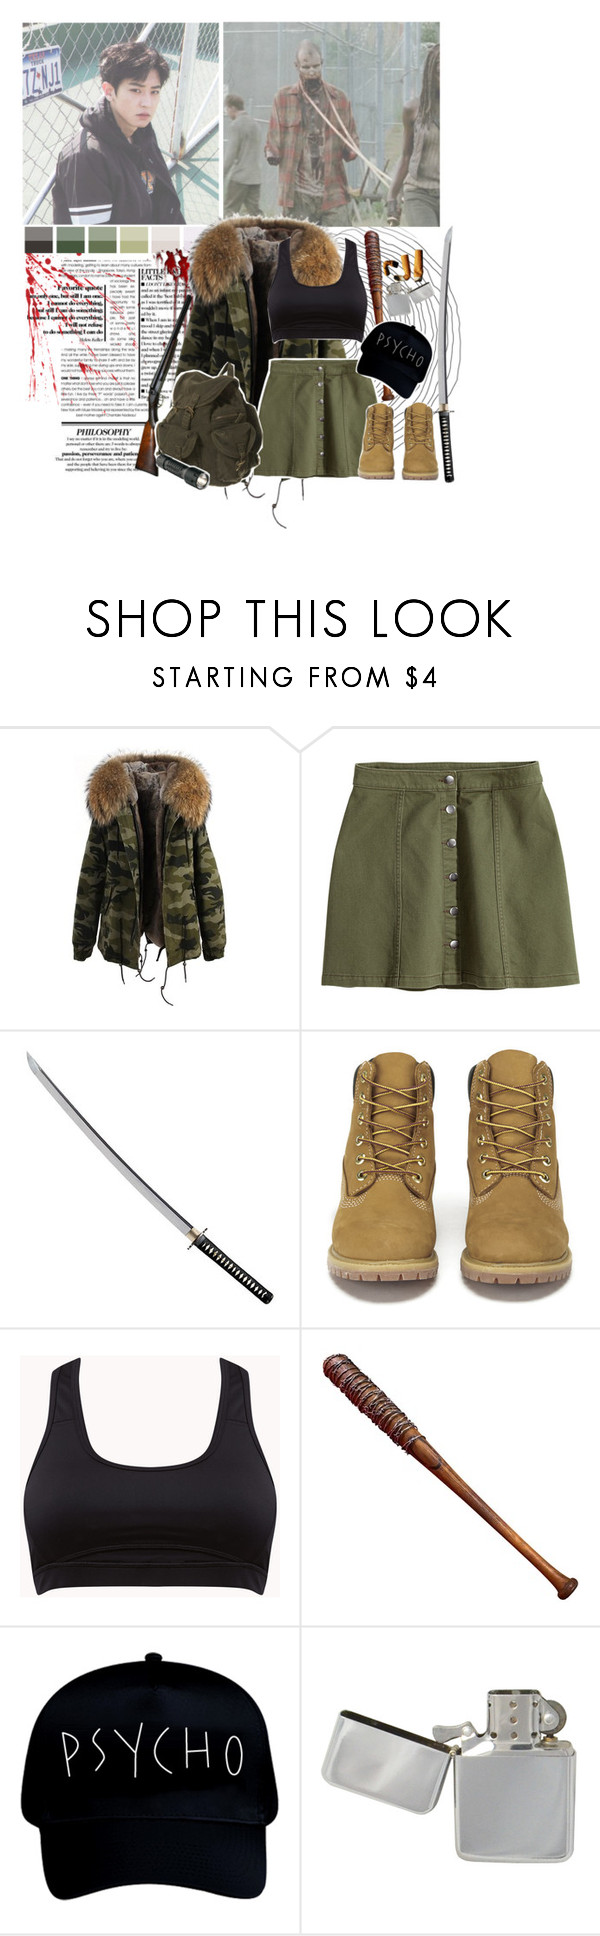 """Chanyeol: Warriors"" by supremebts ❤ liked on Polyvore featuring H&M, Cold Steel, Timberland, Lucille and Streamlight"